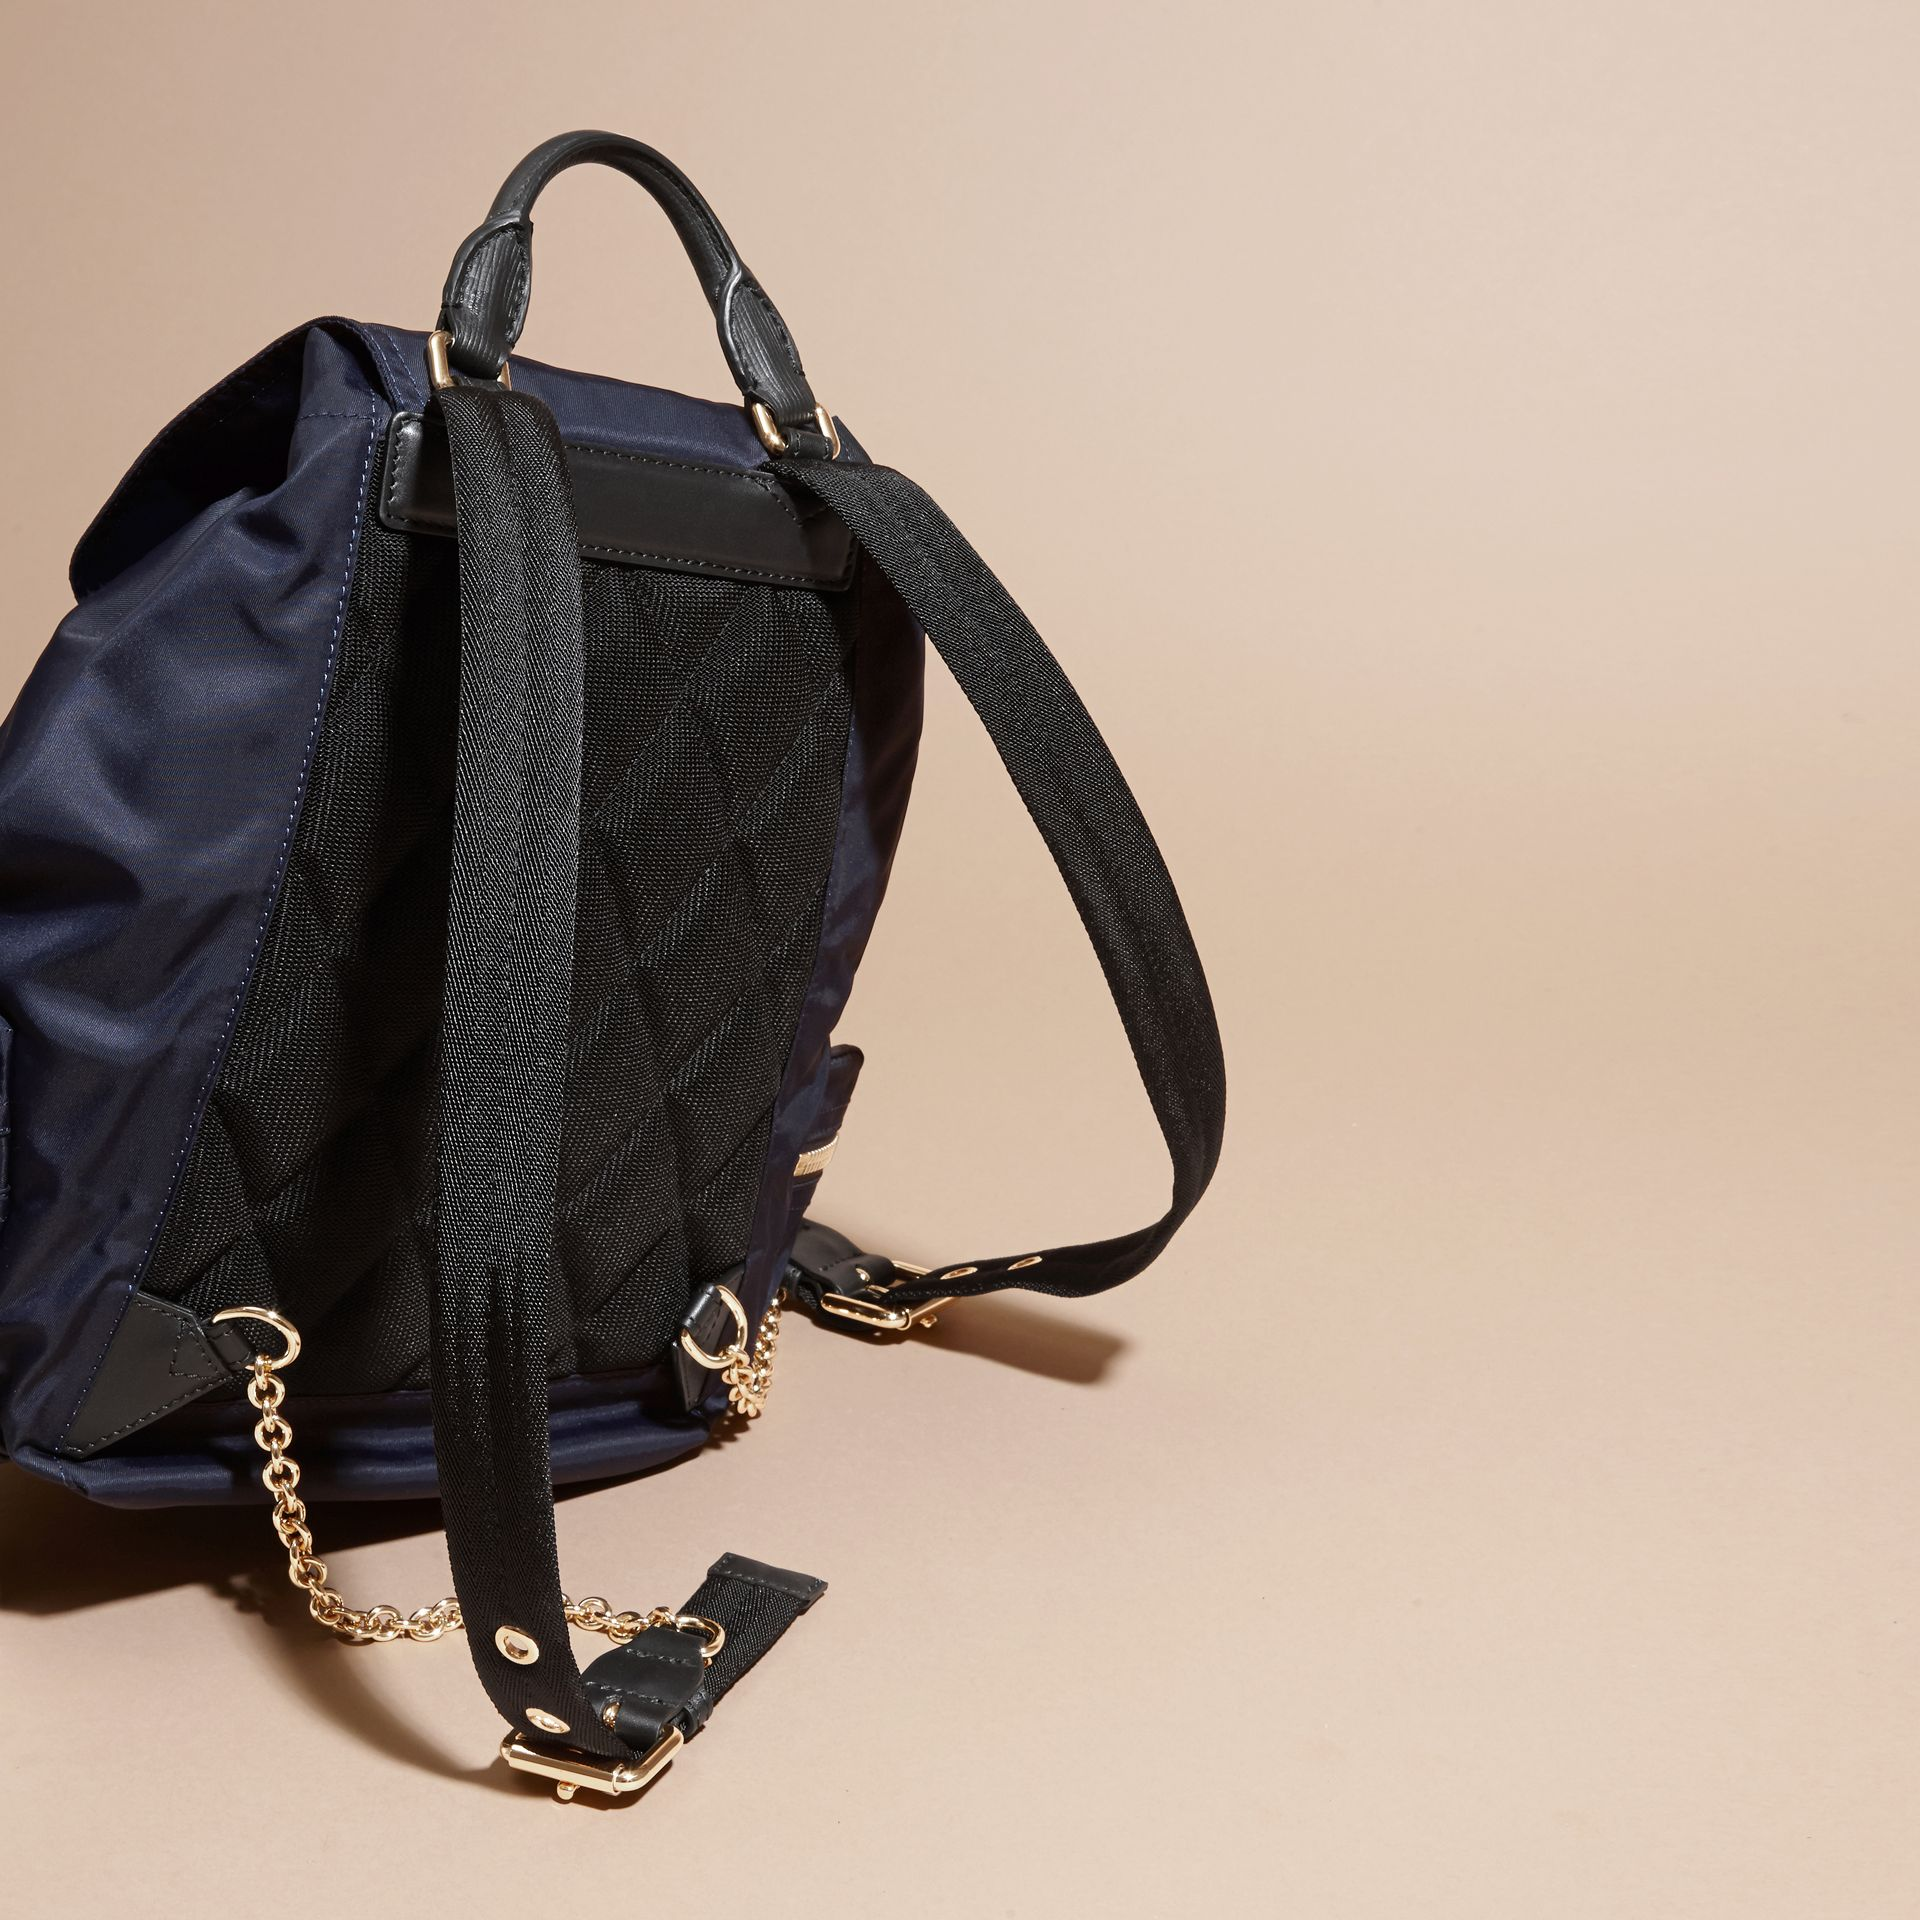 Zaino The Rucksack medio in nylon tecnico e pelle (Blu Inchiostro) - Donna | Burberry - immagine della galleria 4